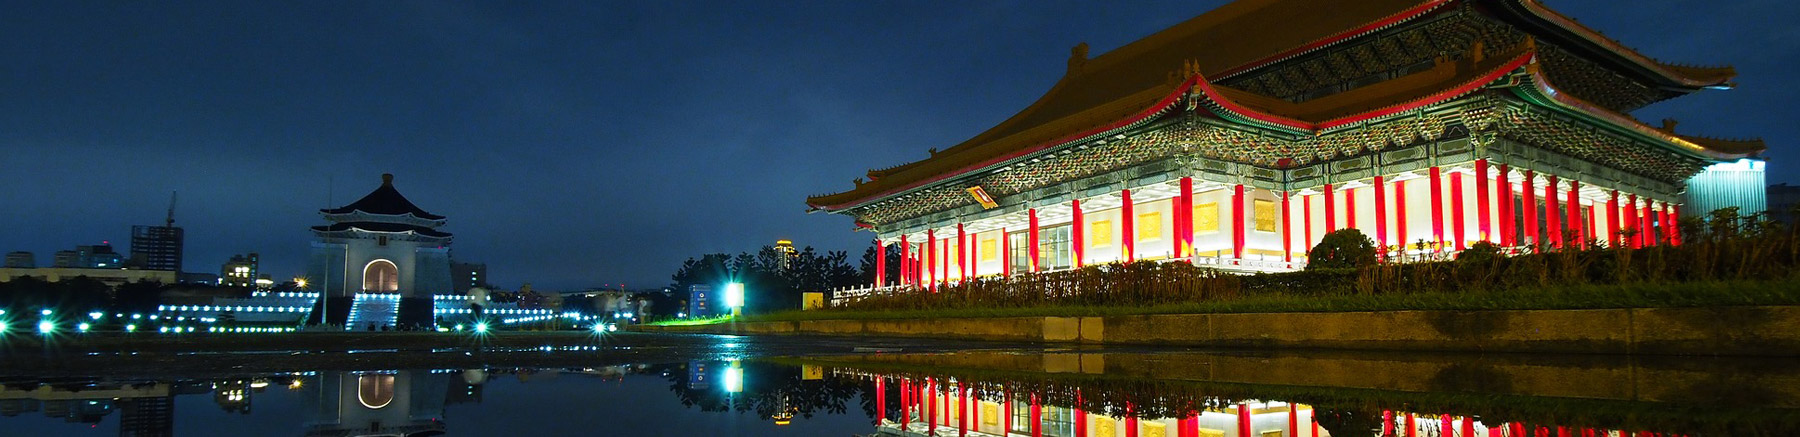 Chiang Kai-Shek Memorial Hall National Concert Hall in Taipei, Taiwan